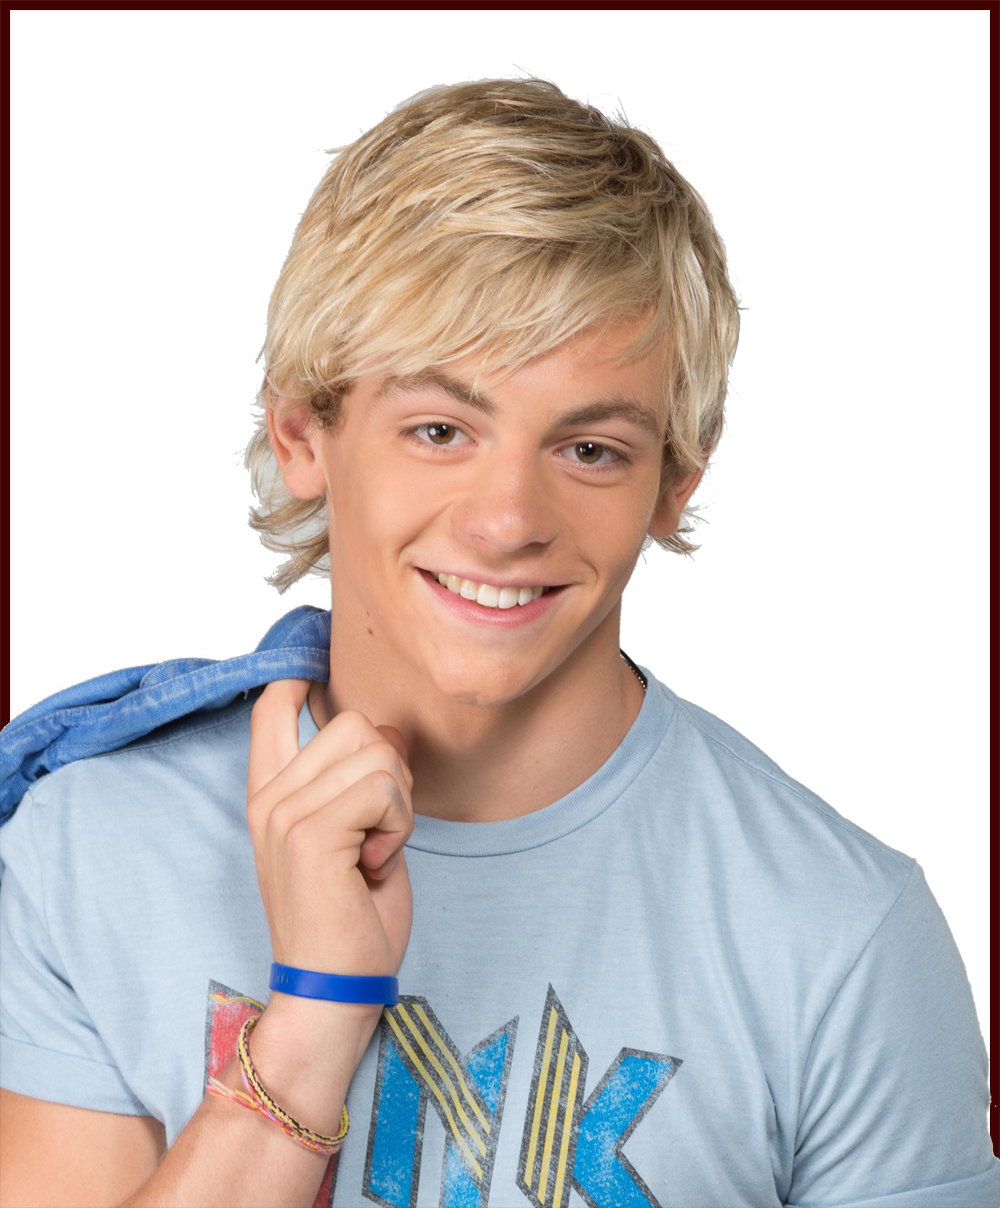 ross lynch 12